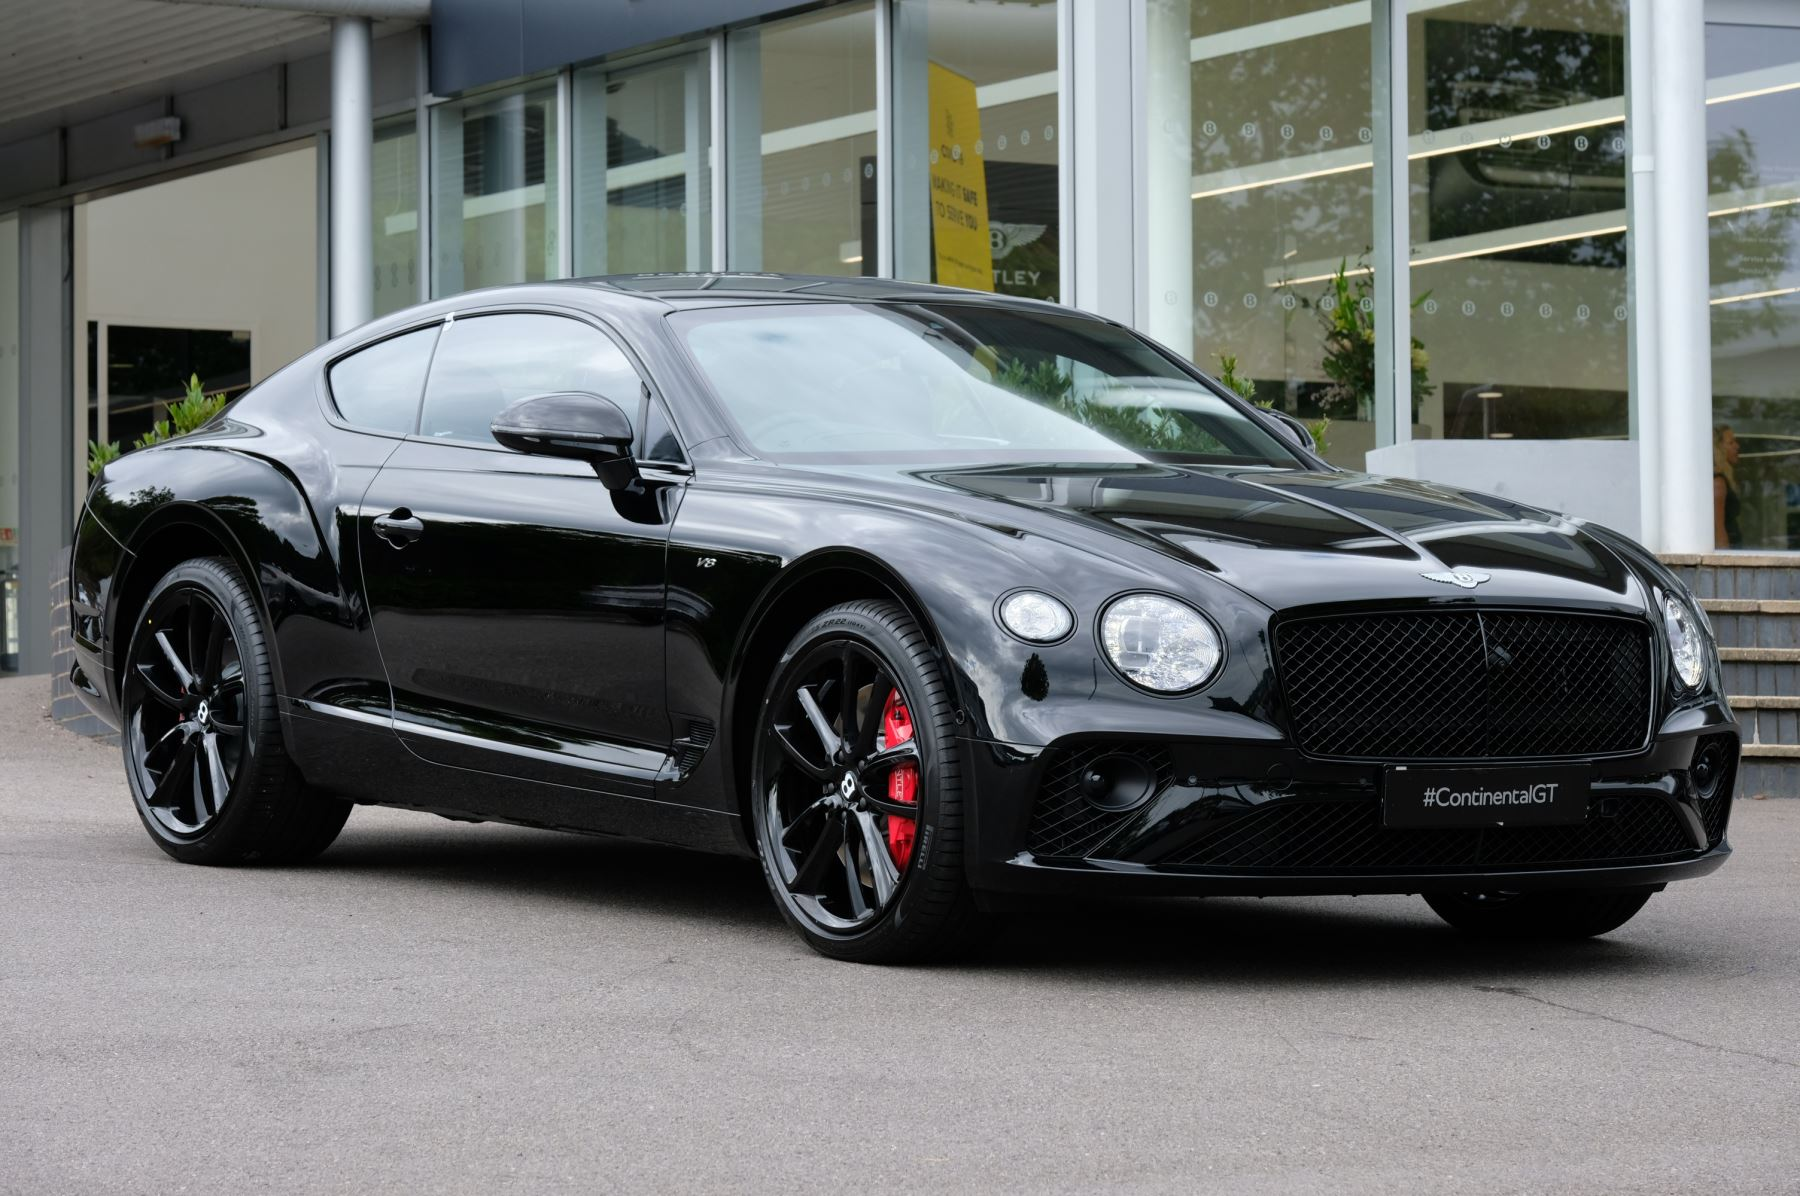 Bentley Continental GT V8 Mulliner Driving Specification 4.0 Automatic 2 door Saloon (2020)